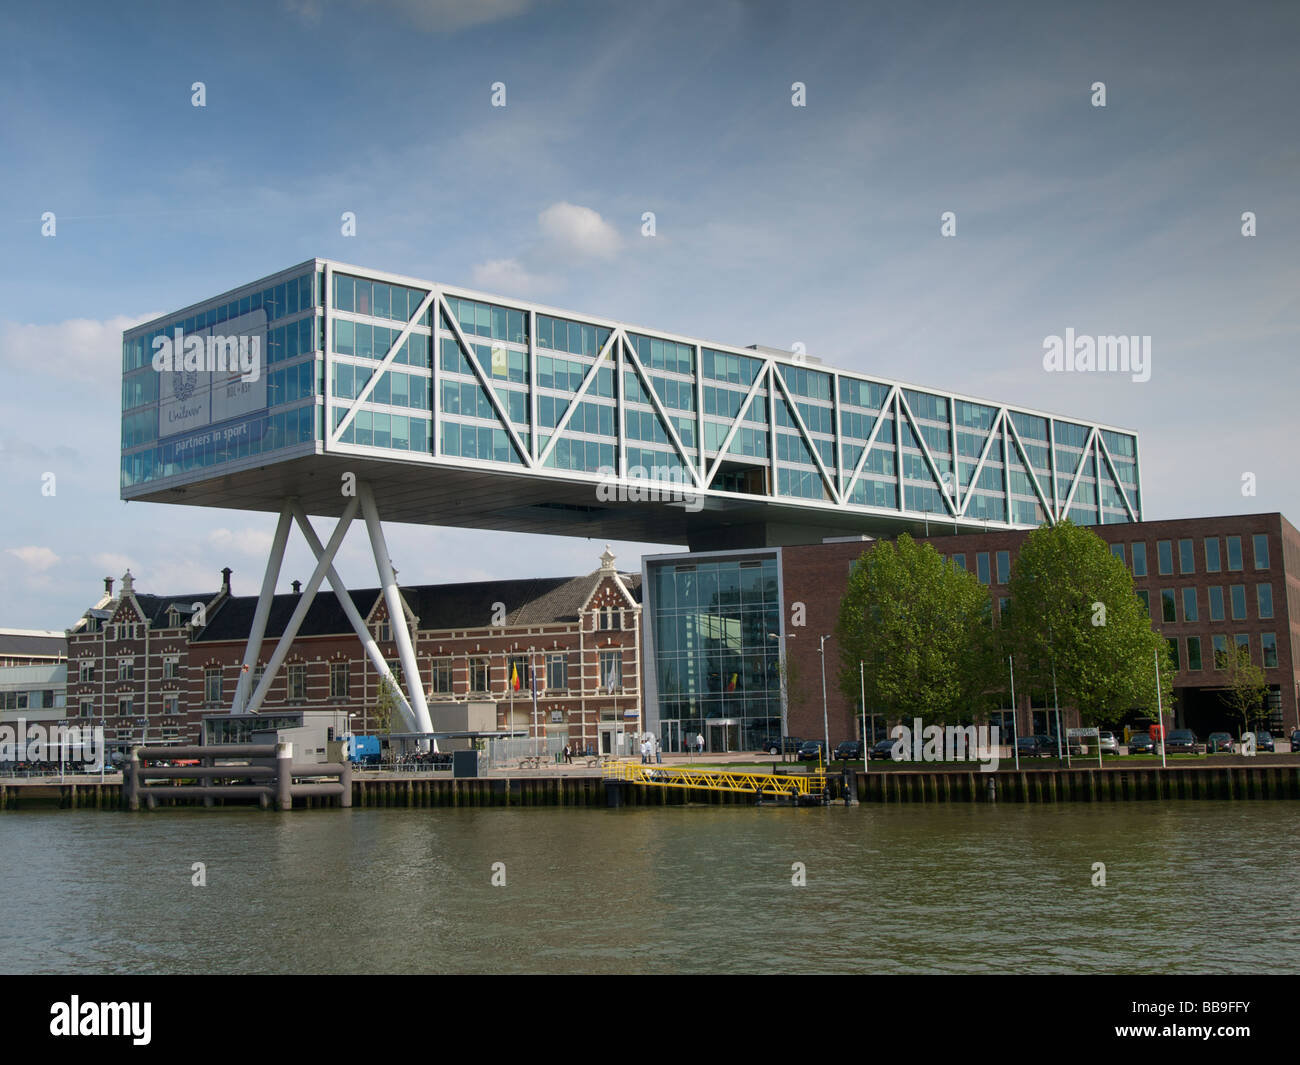 Headquarters of the Unilever corporation in Rotterdam the Netherlands - Stock Image